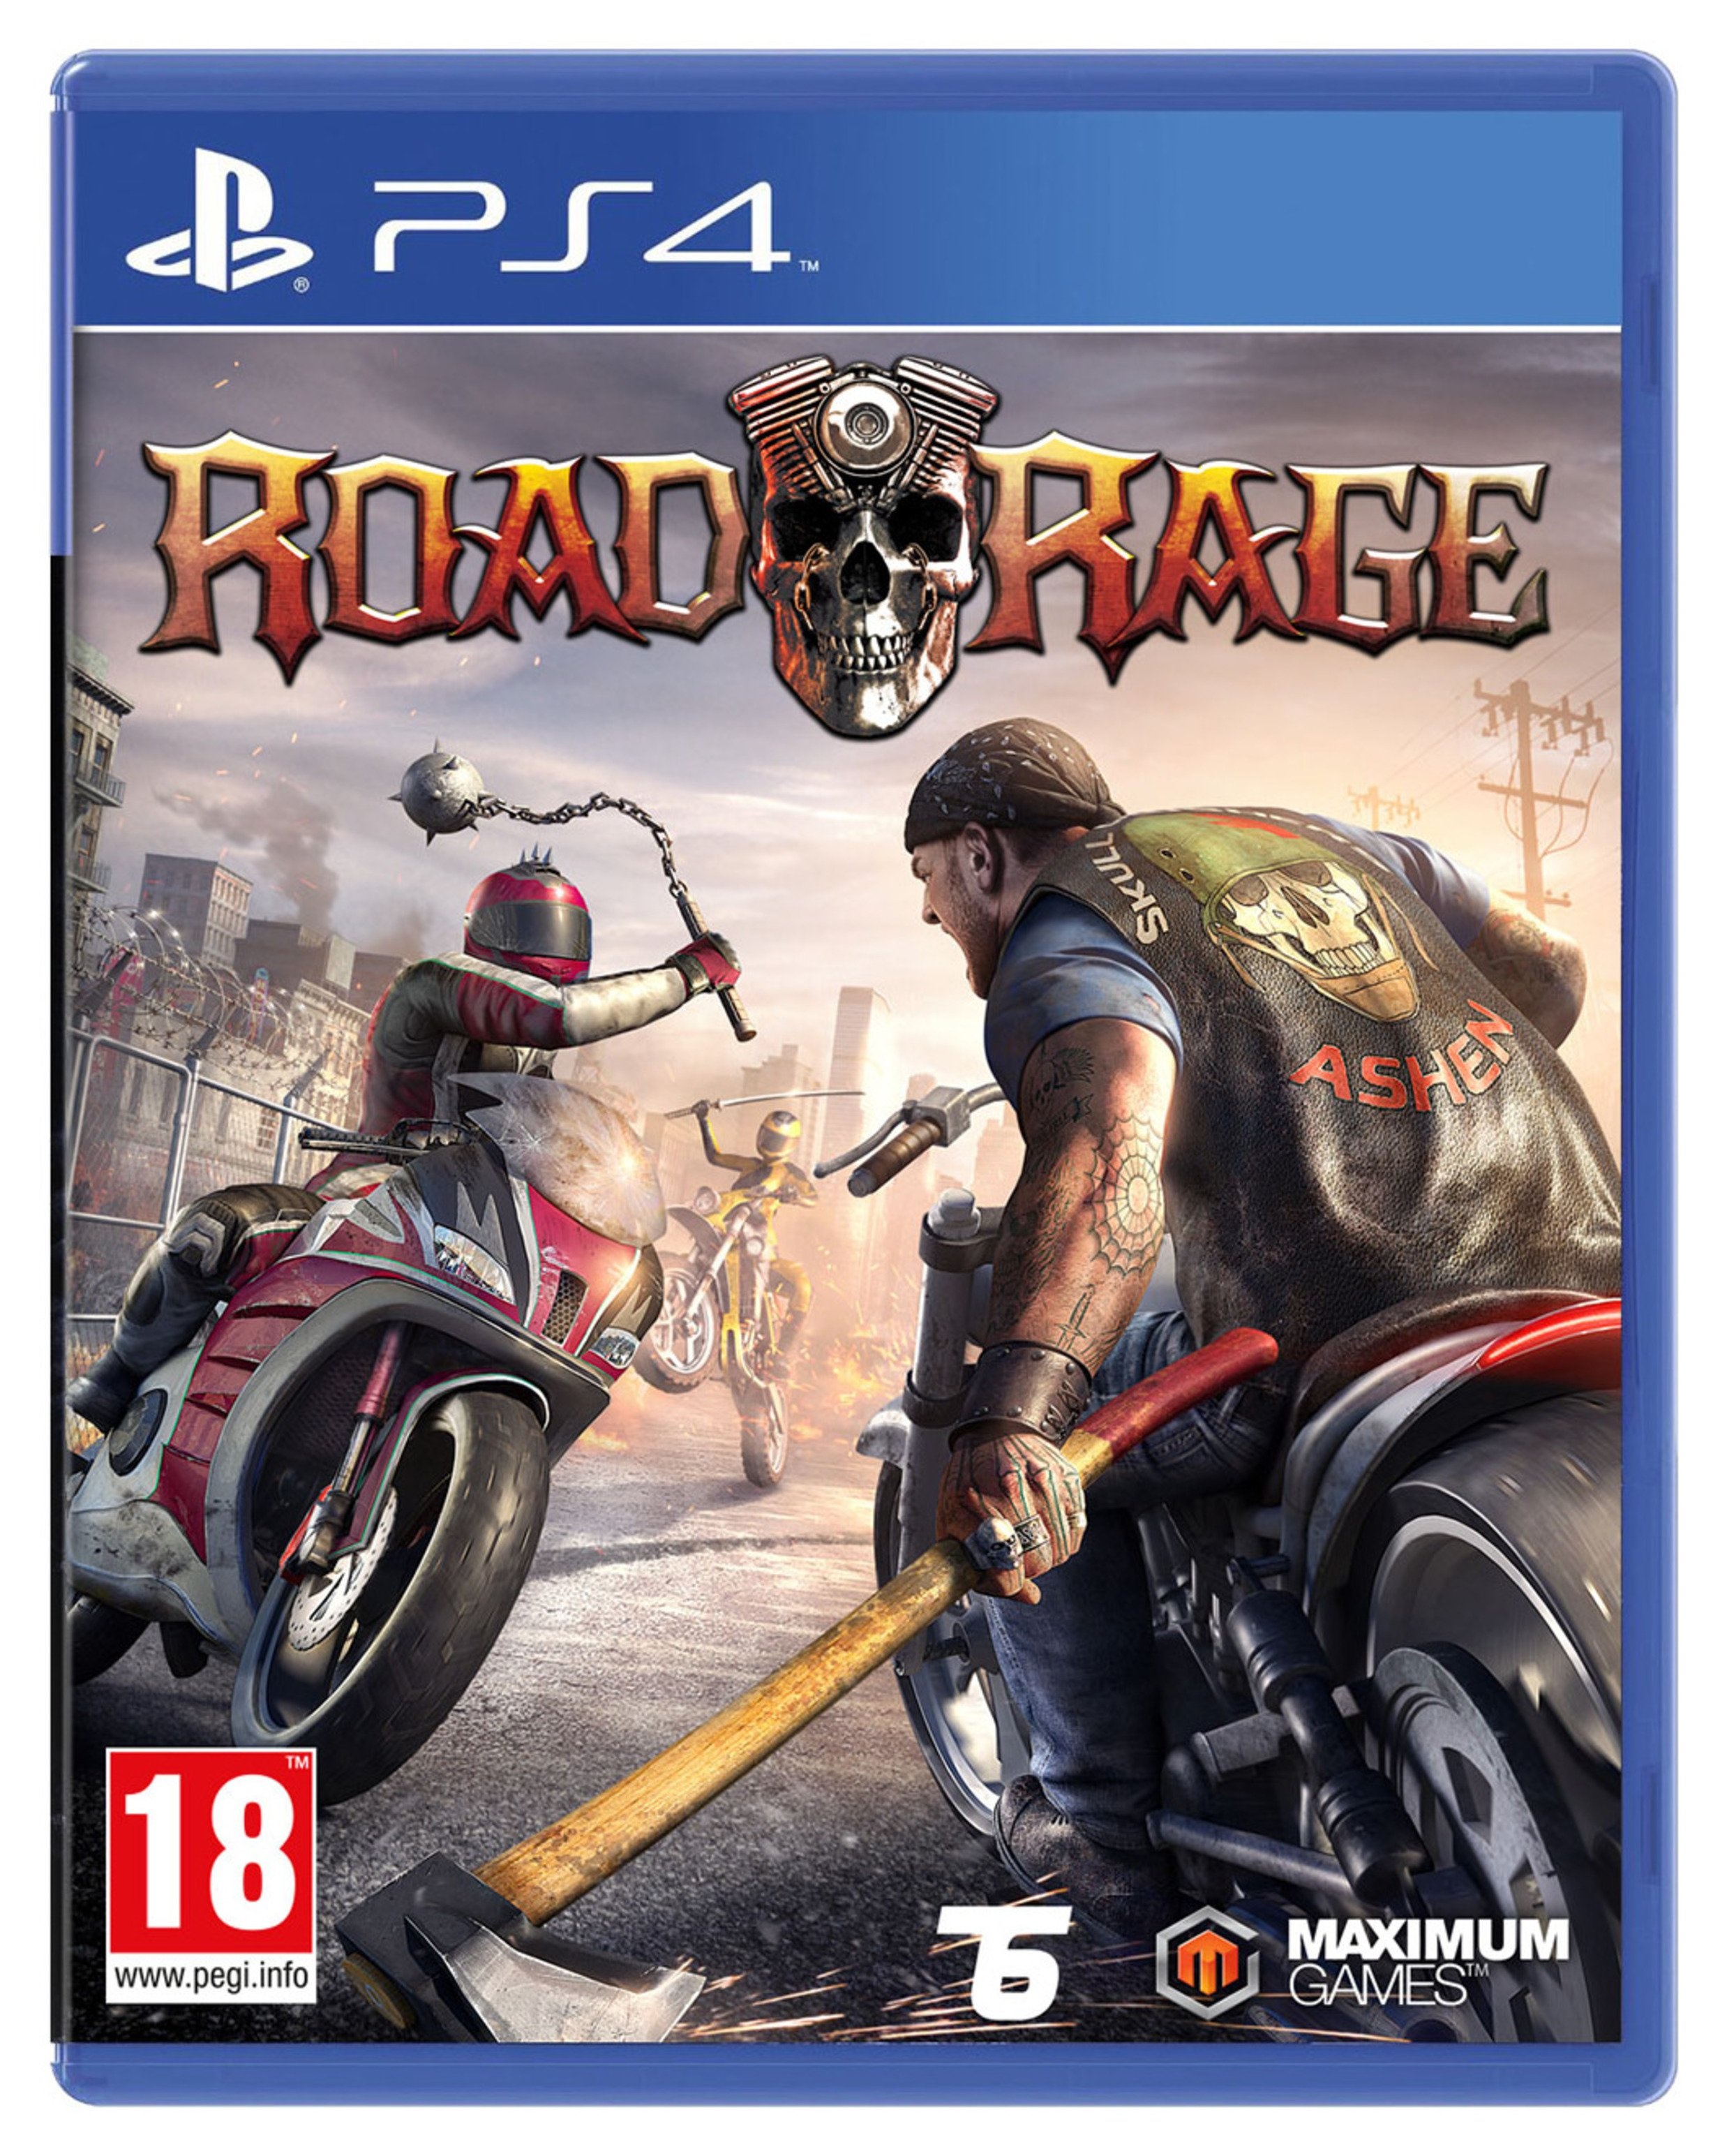 Road Rage PS4 Game.